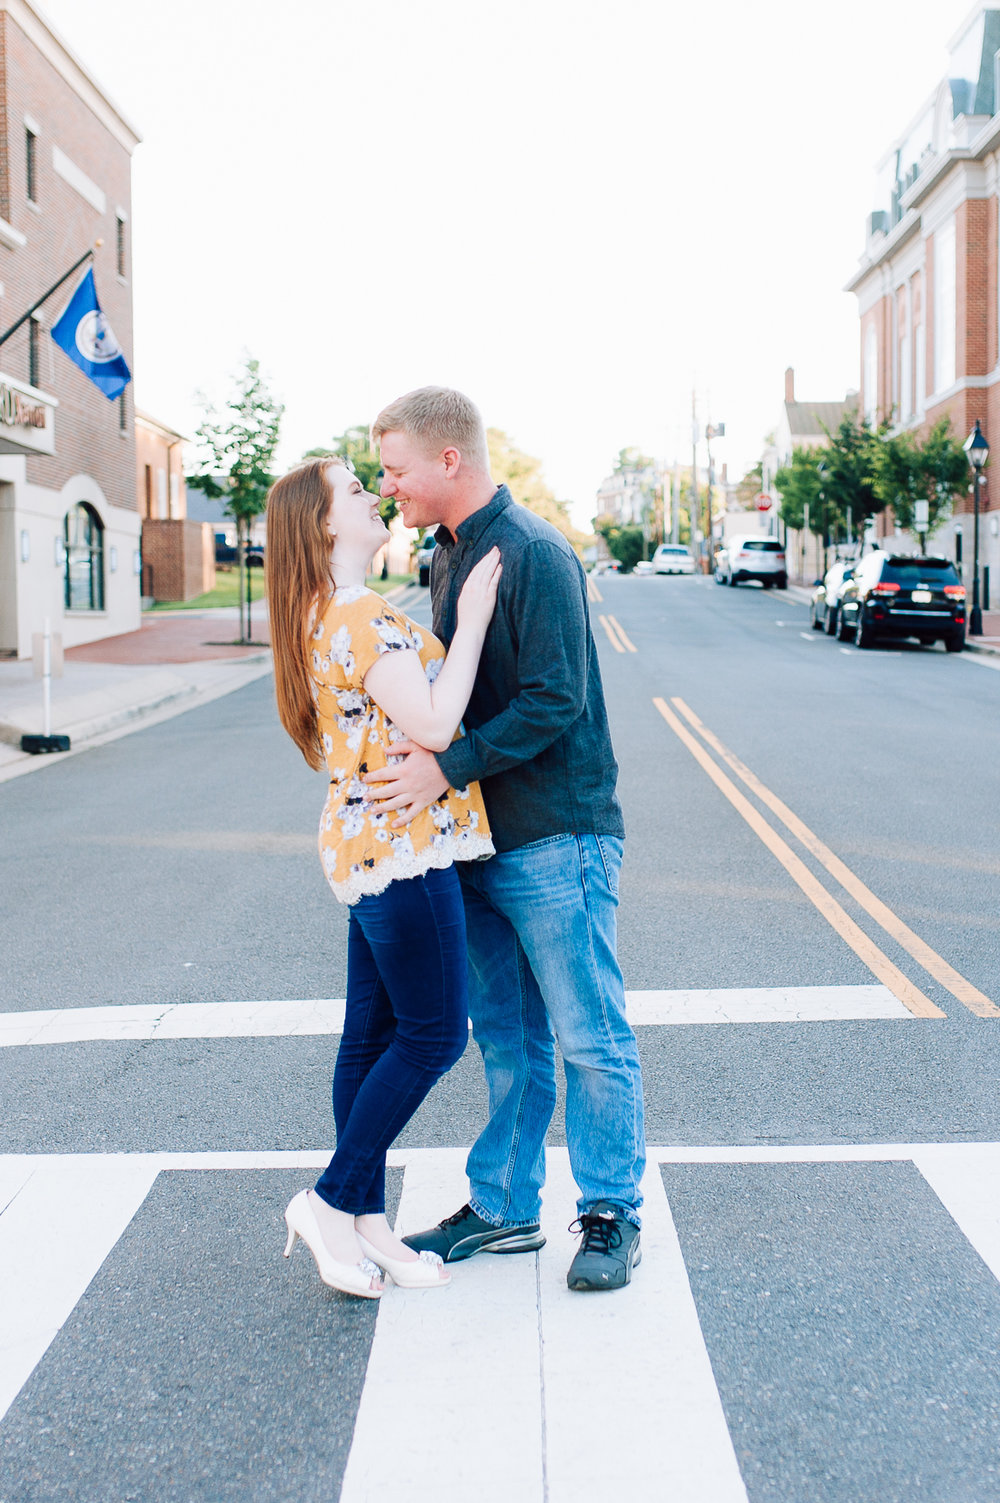 engagement_downtown_fredericksburg_virginiaweddingphotographer_youseephotography_ErinBrad (17).jpg